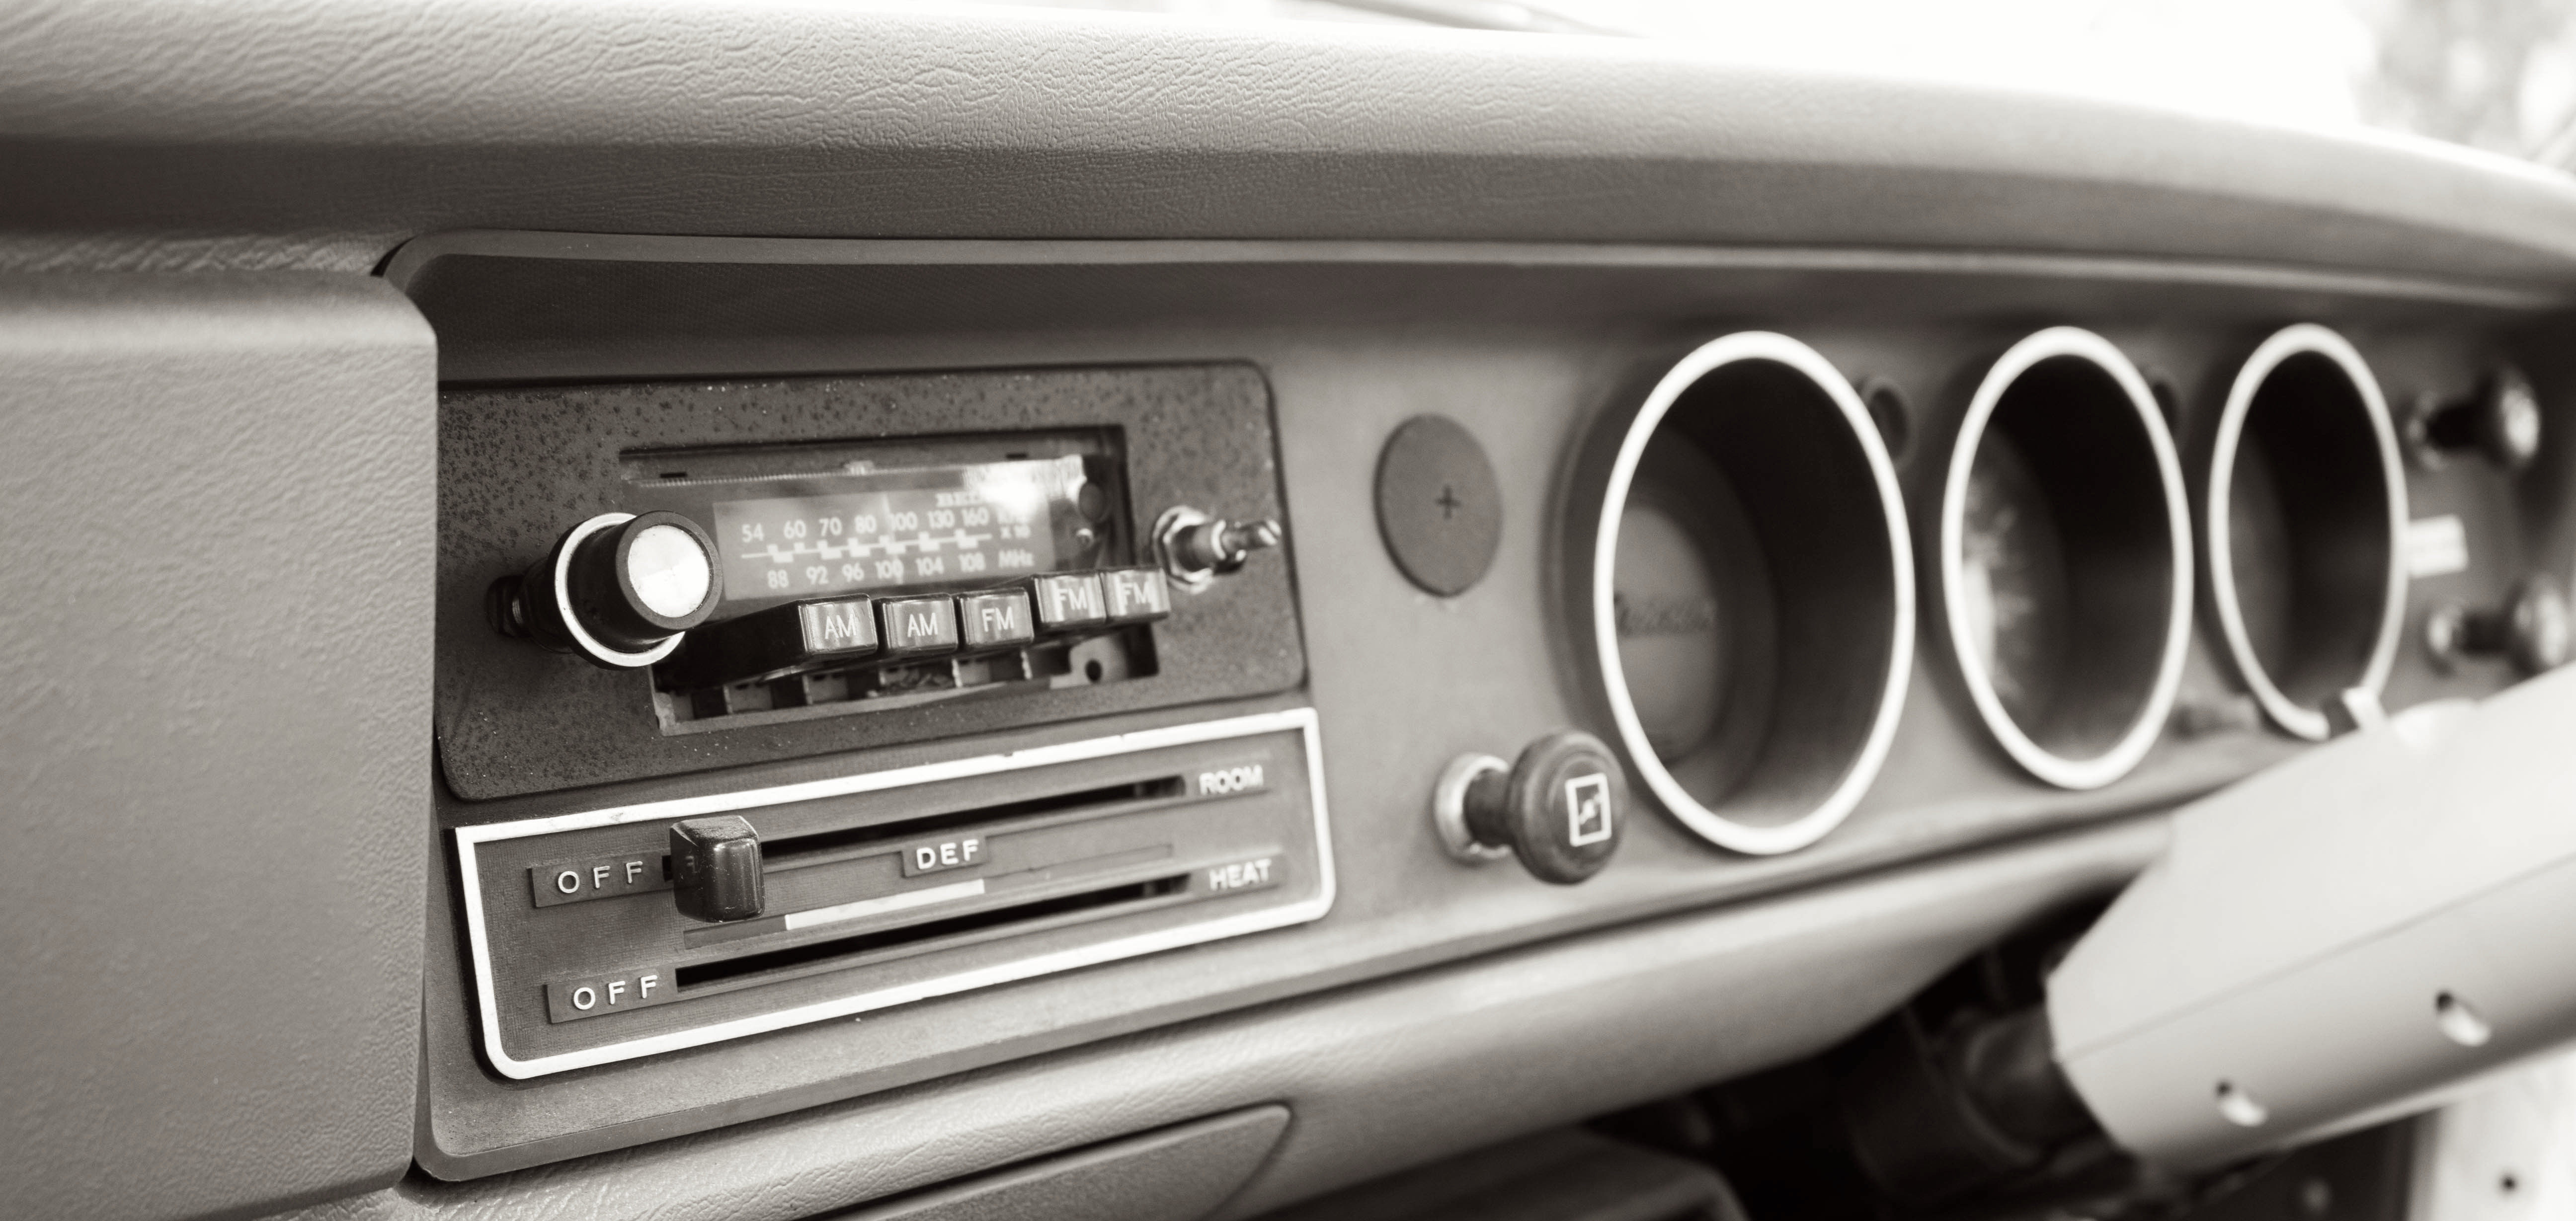 Dashboard for an old car, showing old style radio buttons